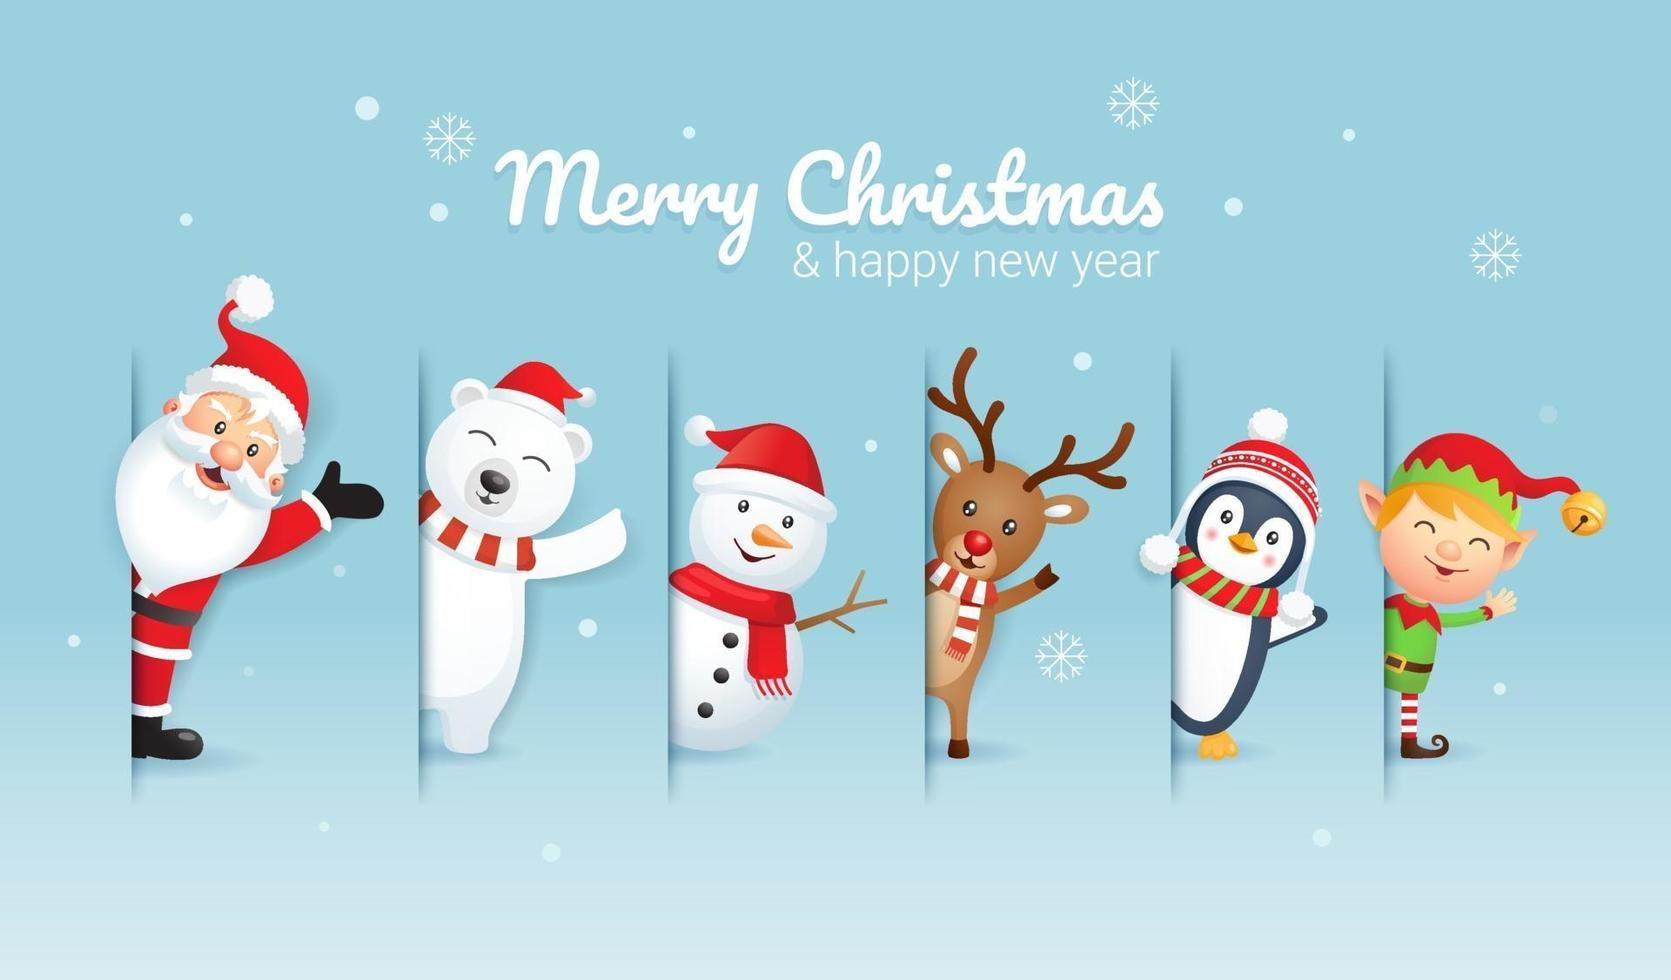 Merry christmas and happy new year background. Santa claus and friends on blue color vector illustration.